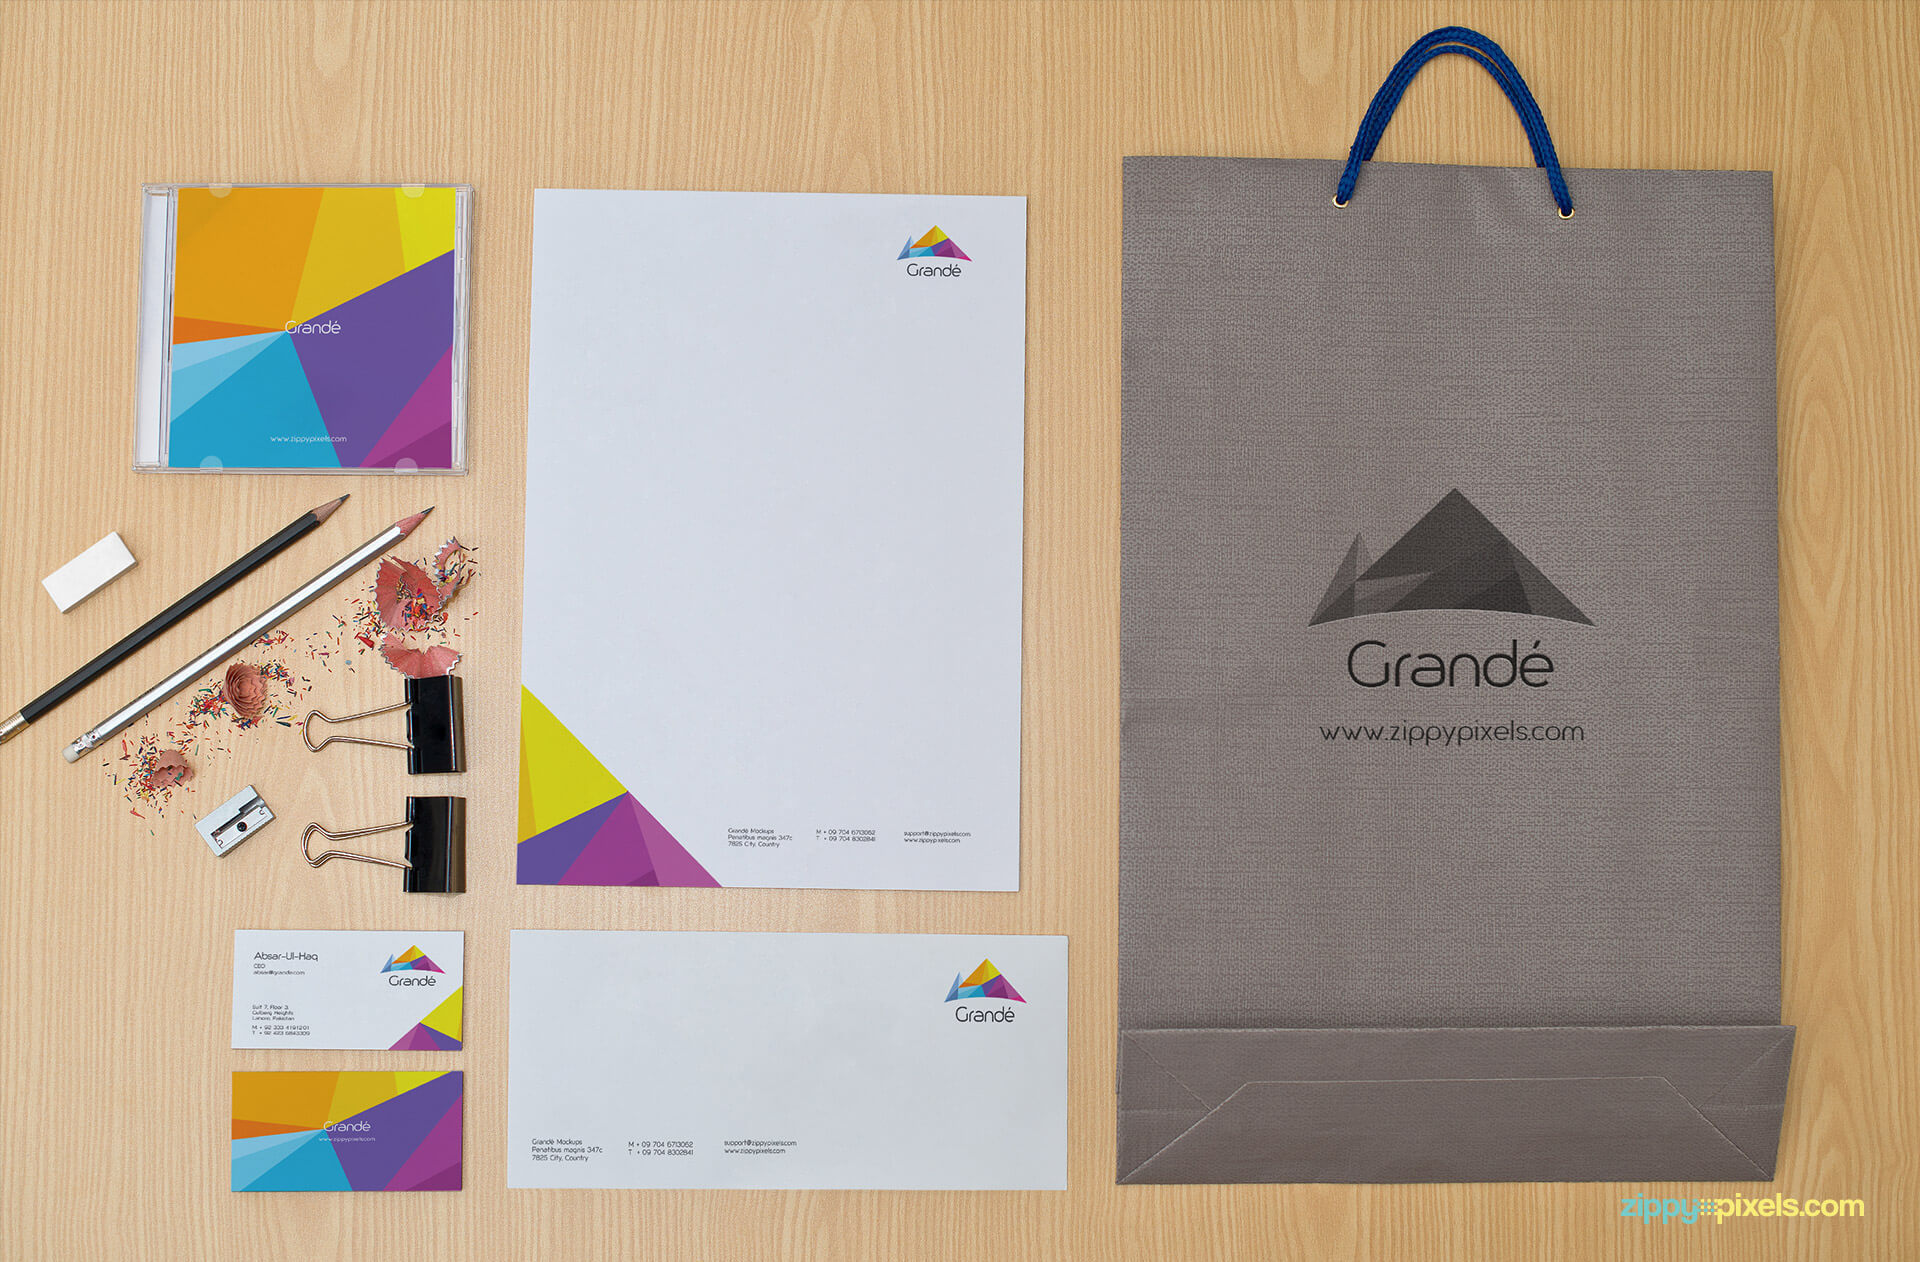 Stationery Mockup of Letterhead, Bag, Business Cards and Envelope